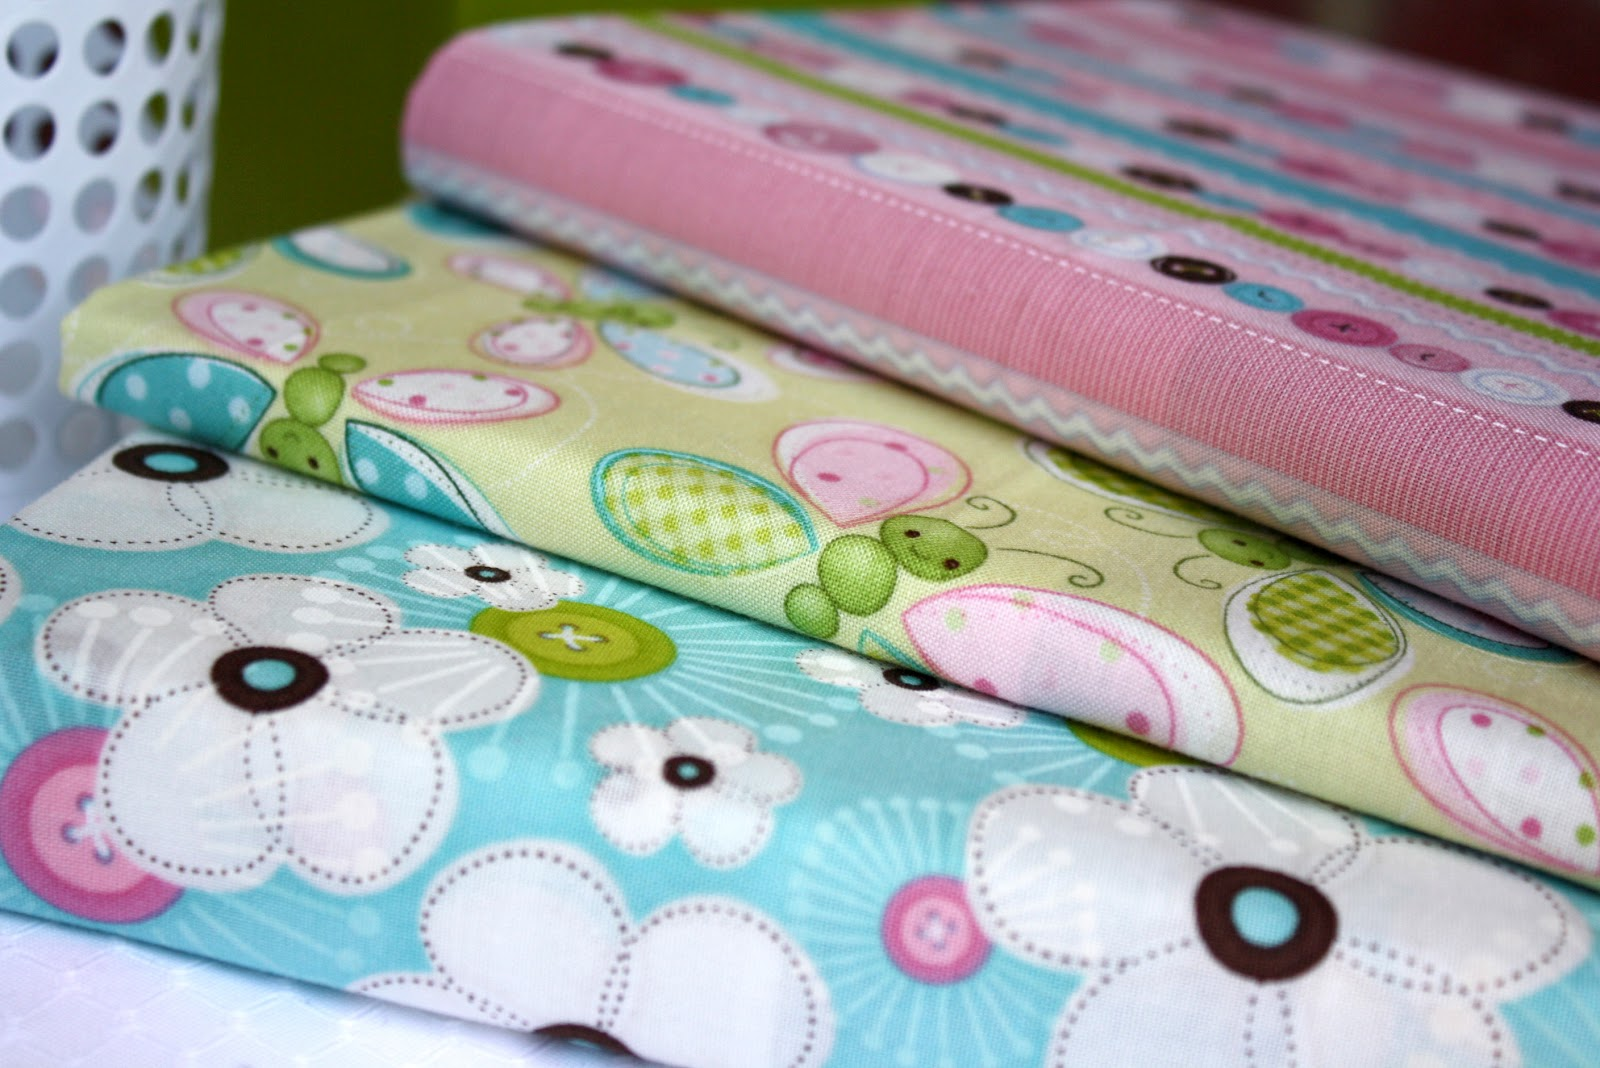 Sew A Fabric Book Cover : Heather rosas illustration super easy no sew fabric book